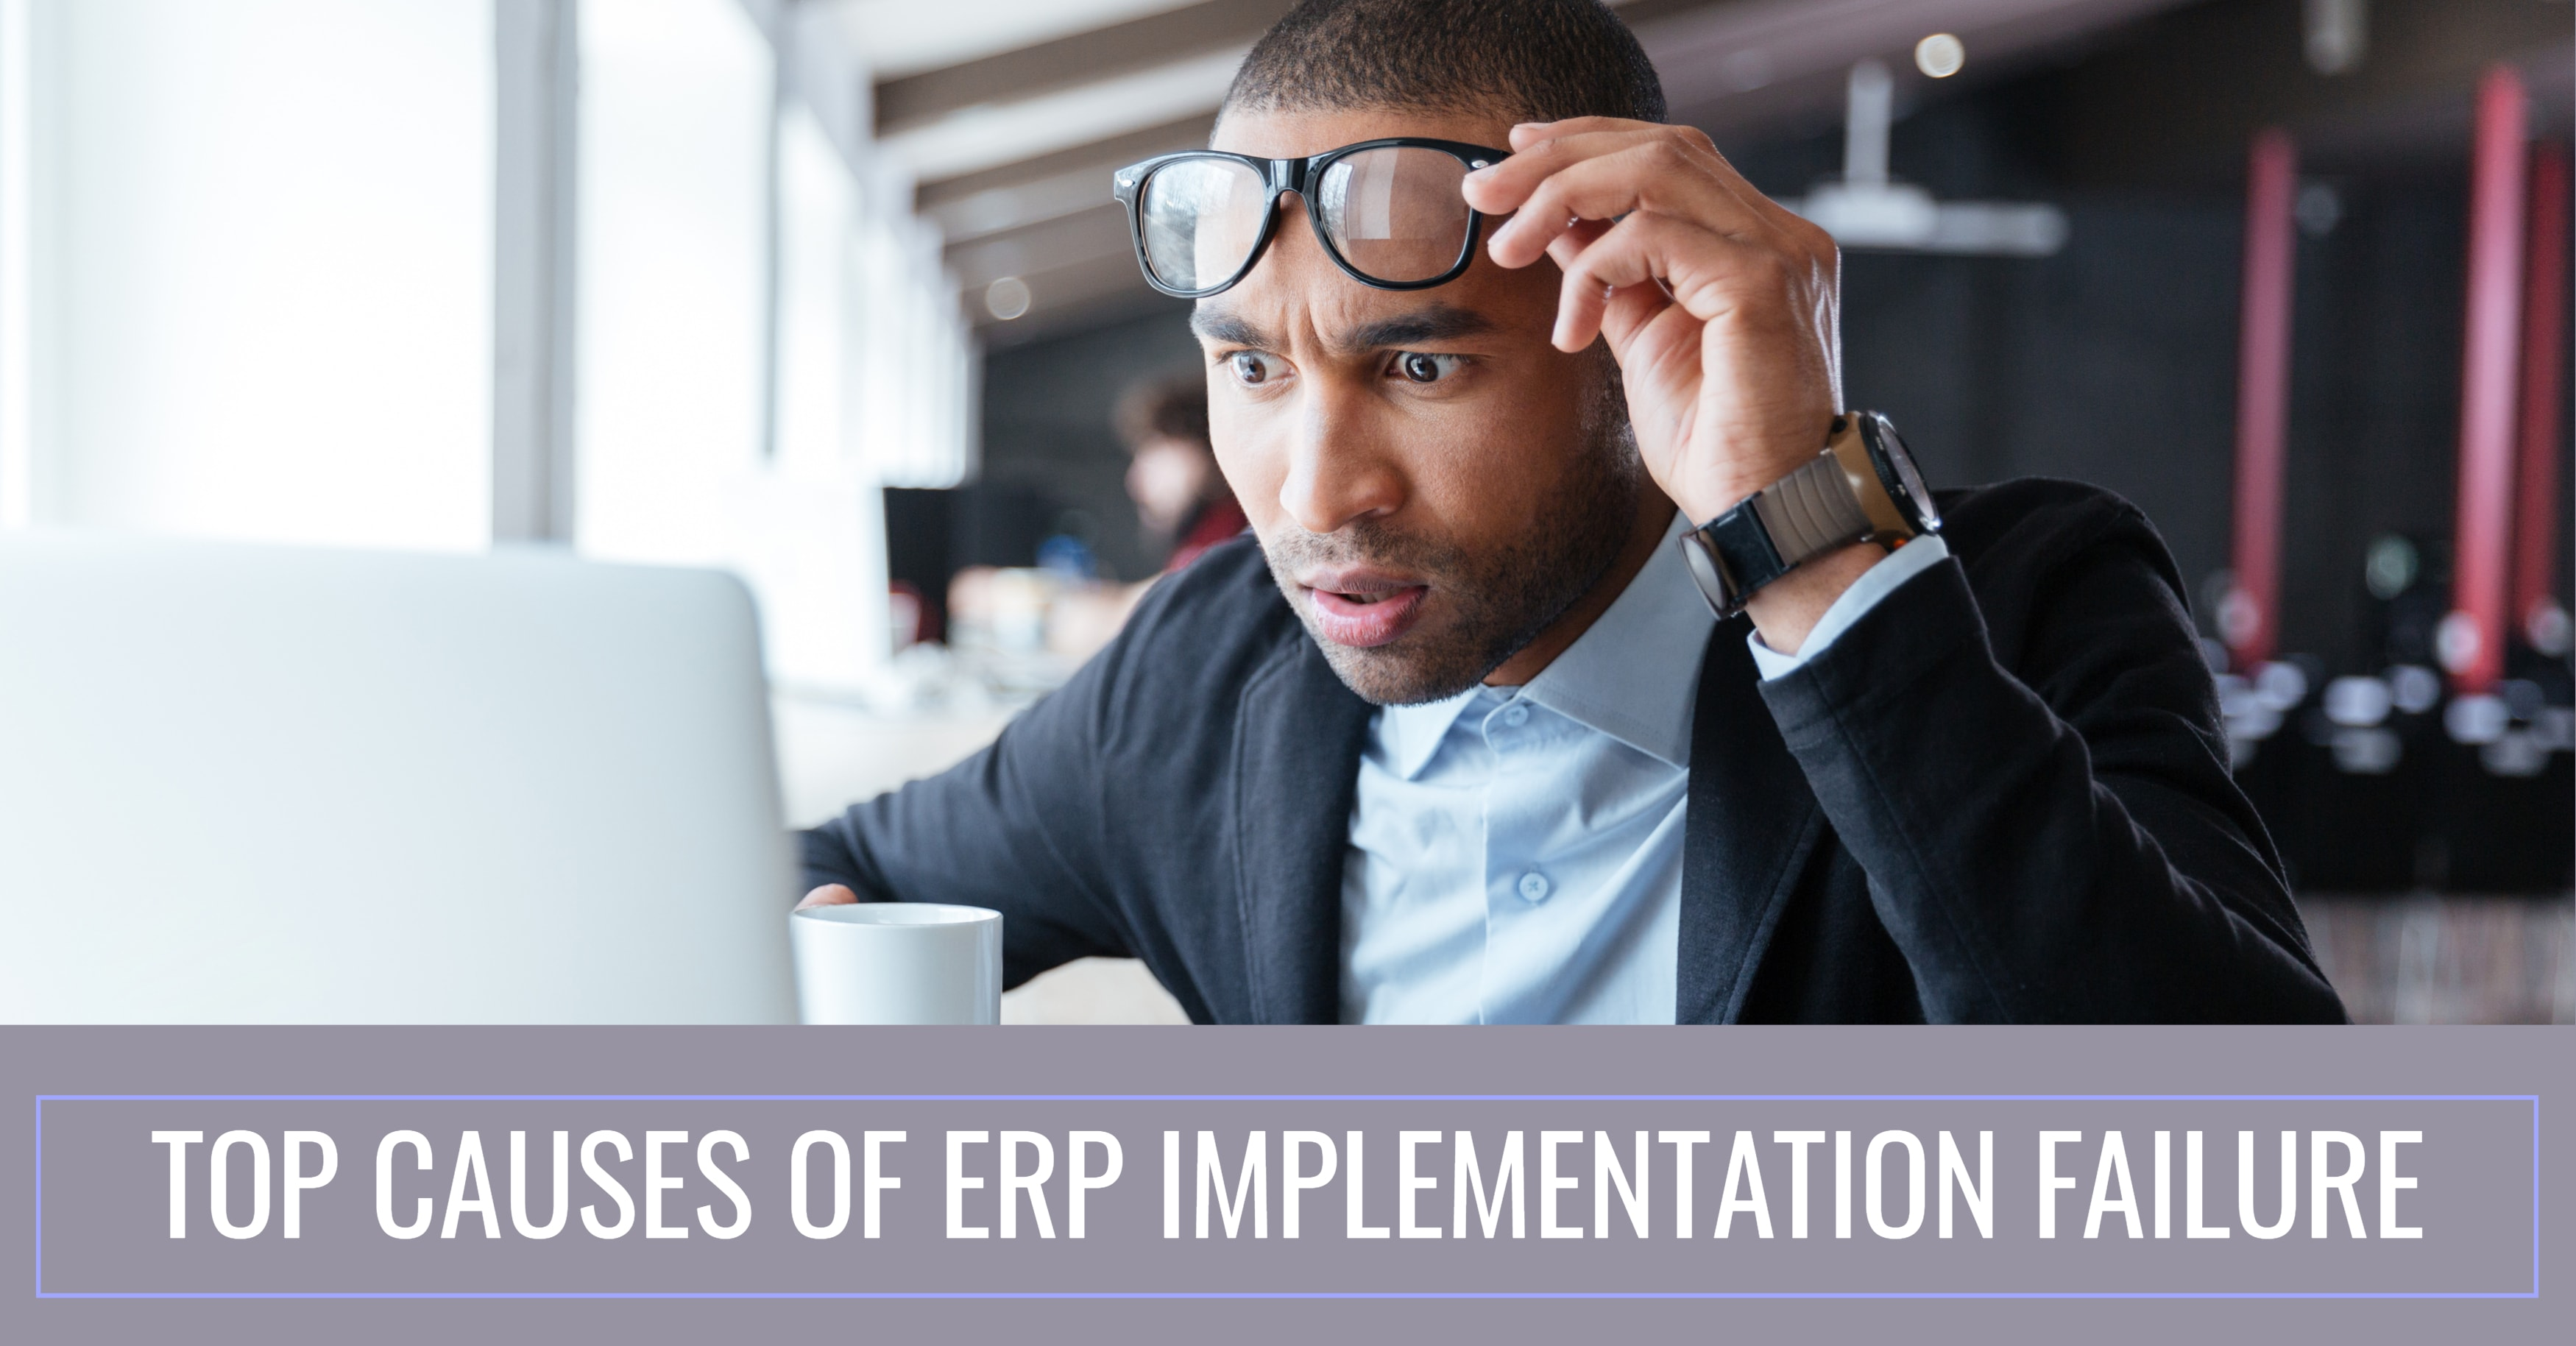 Top Causes of ERP Implementation Failure